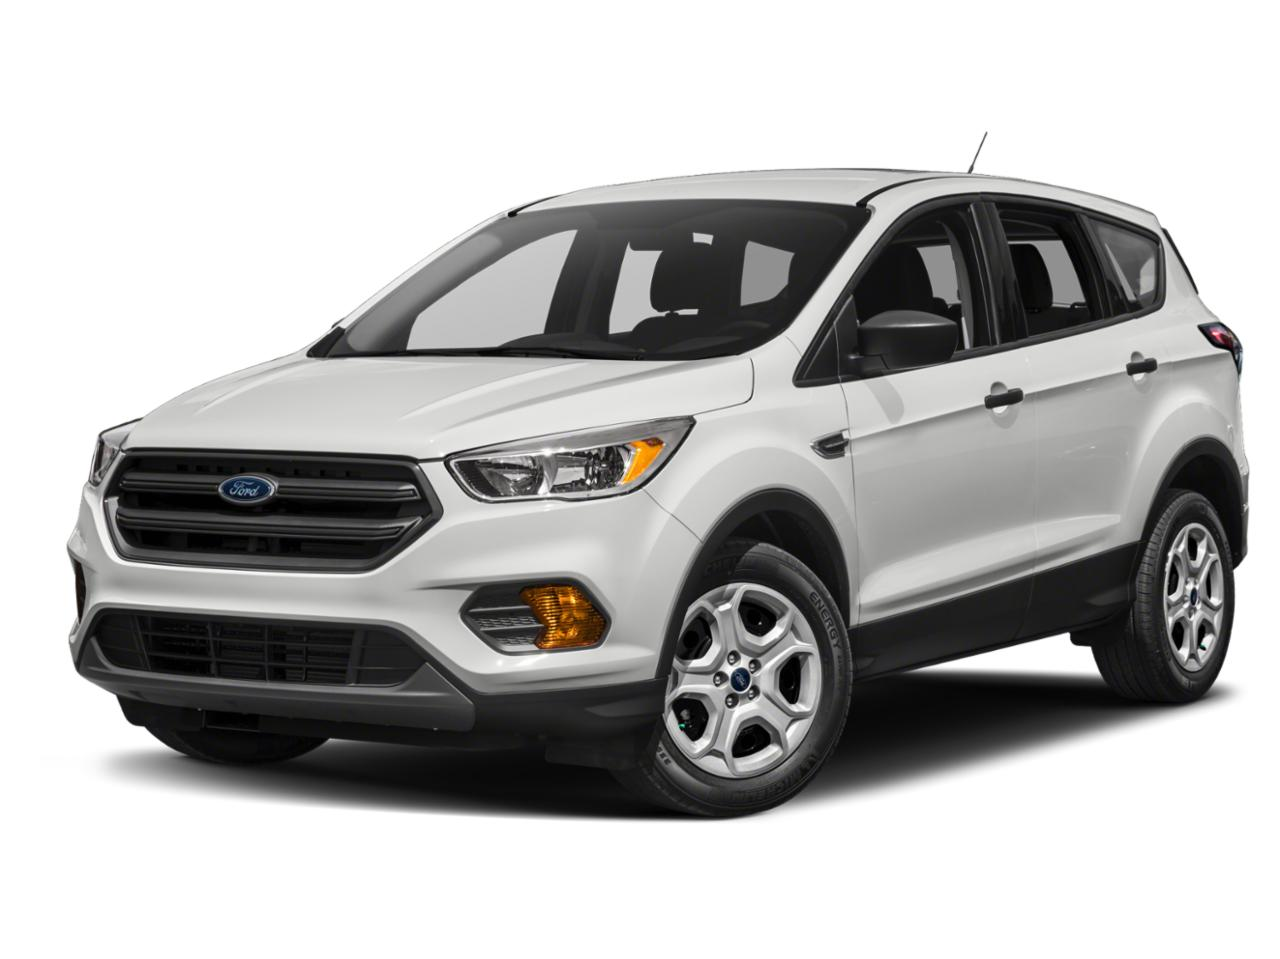 2018 Ford Escape Vehicle Photo in Gardner, MA 01440